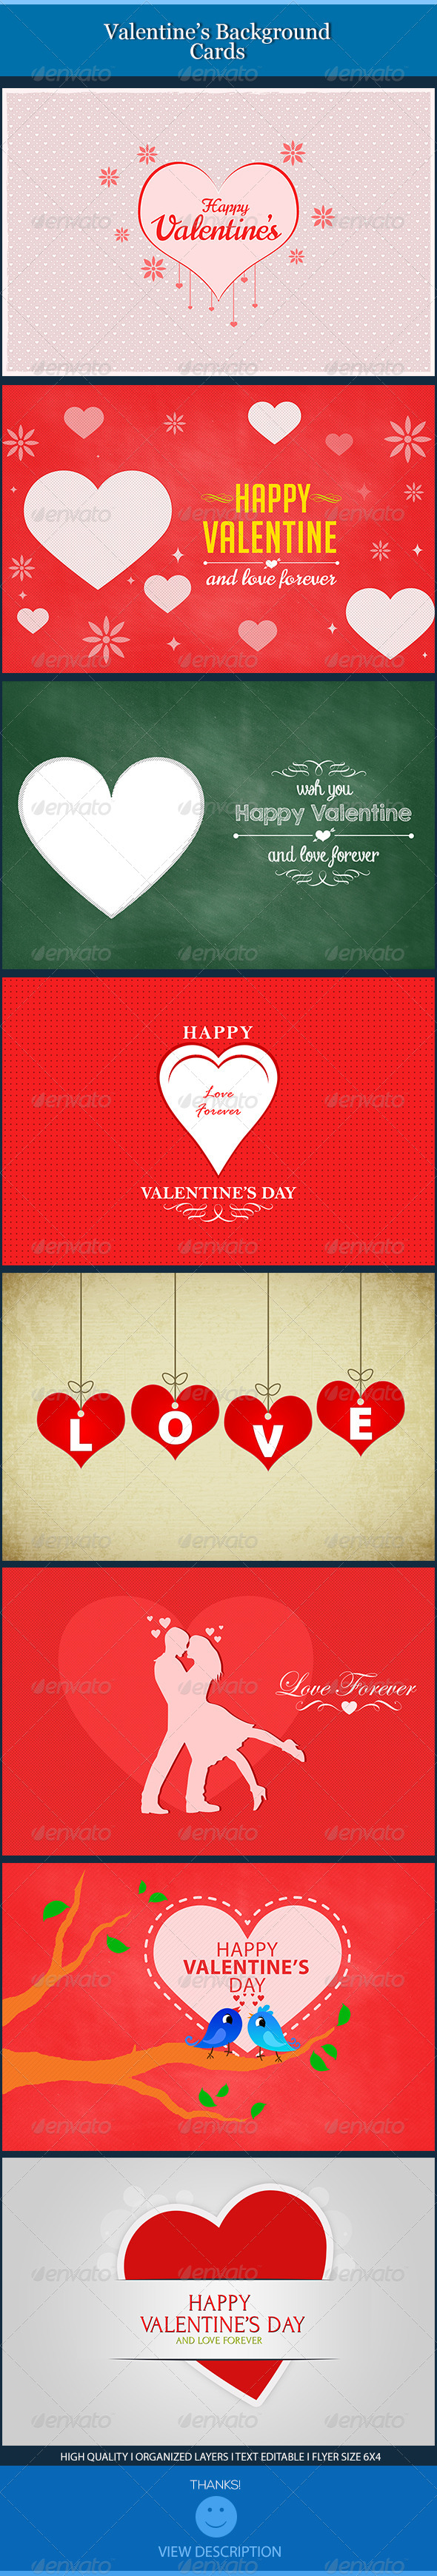 Valentine Backgrounds Cards